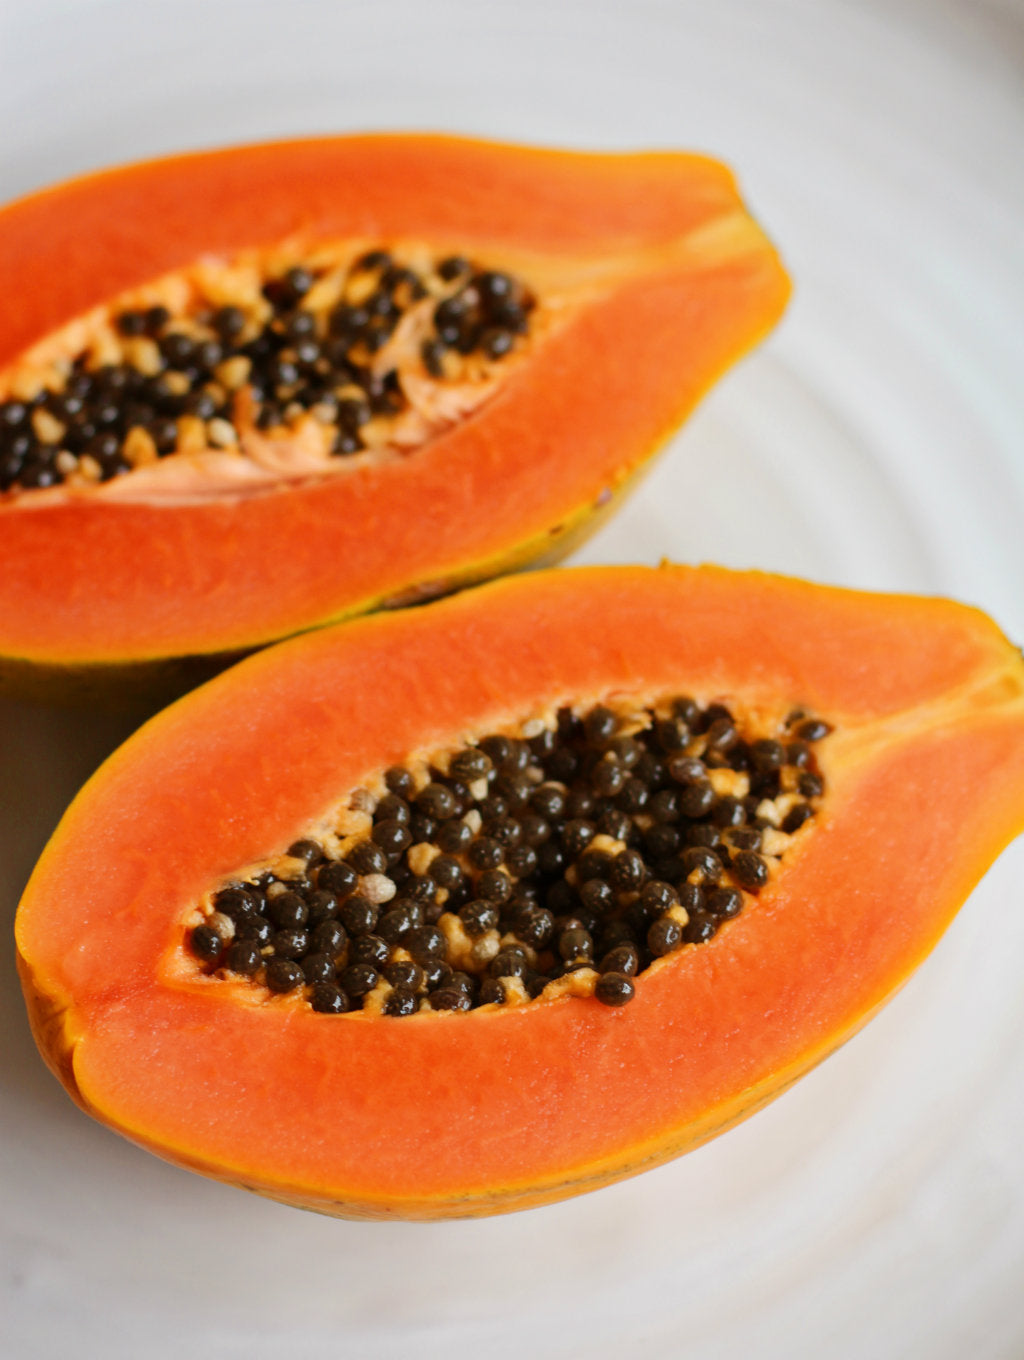 buy papaya online harris farm